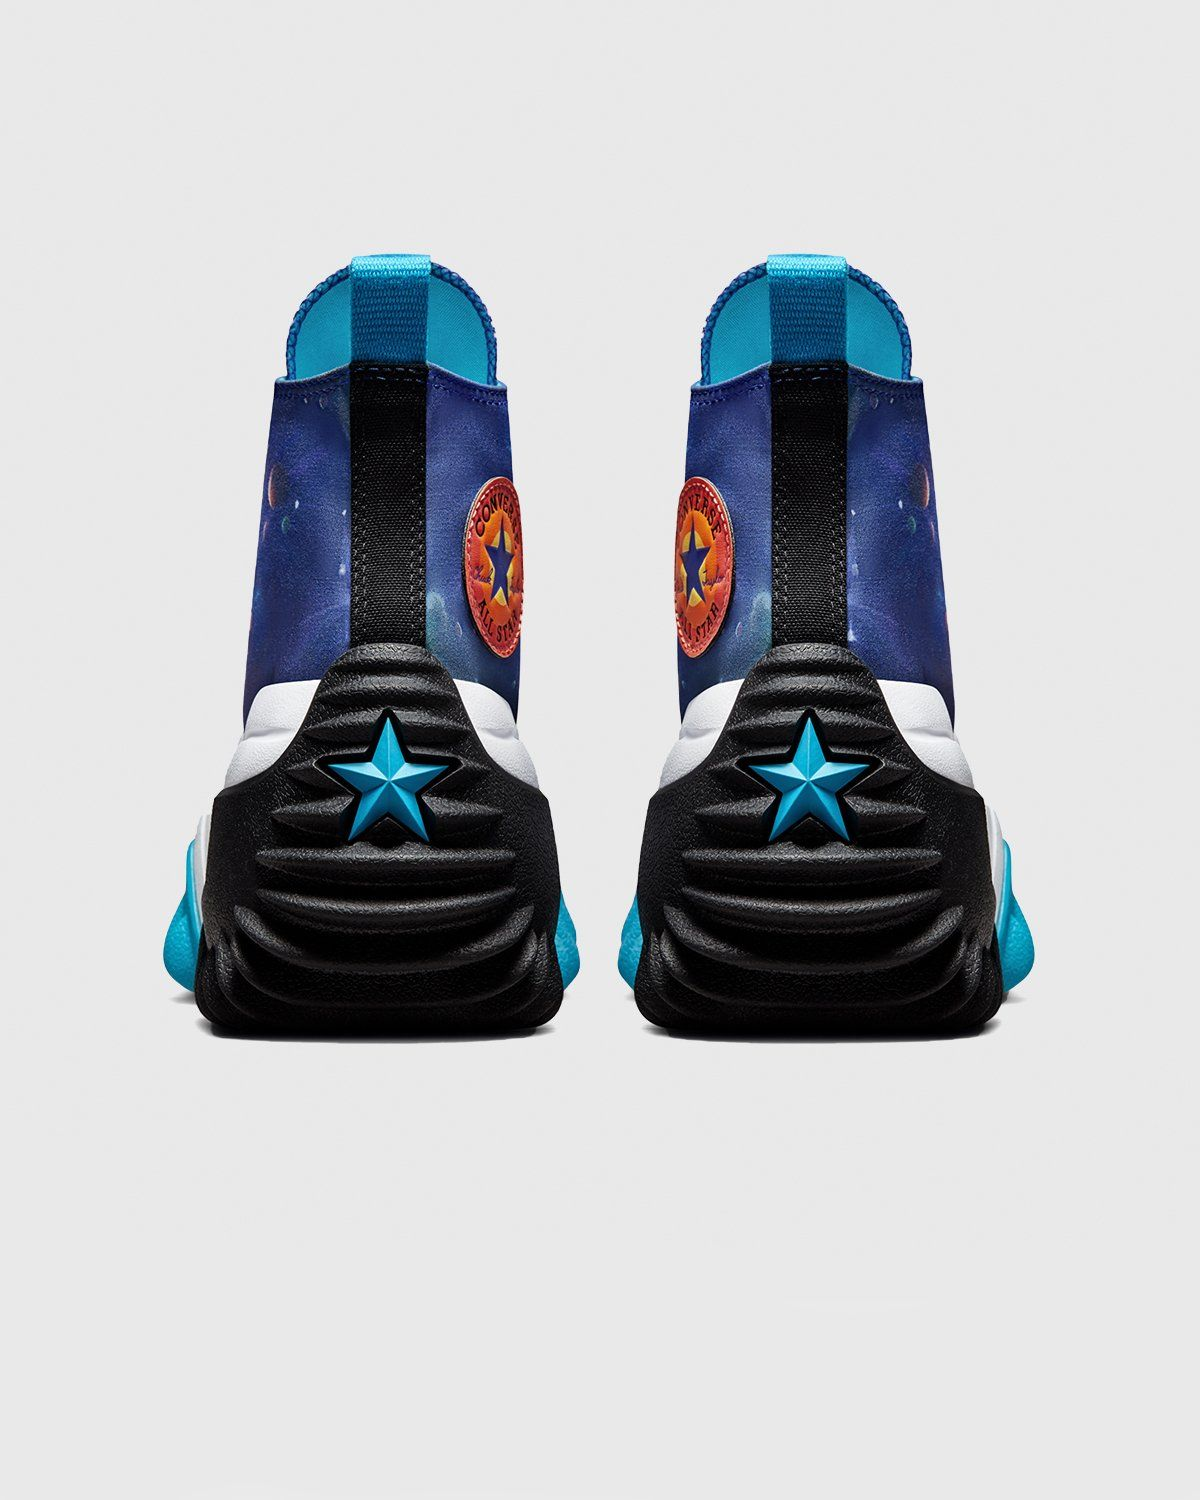 Converse x Space Jam: A New Legacy – Run Star Motion Multi - Image 4